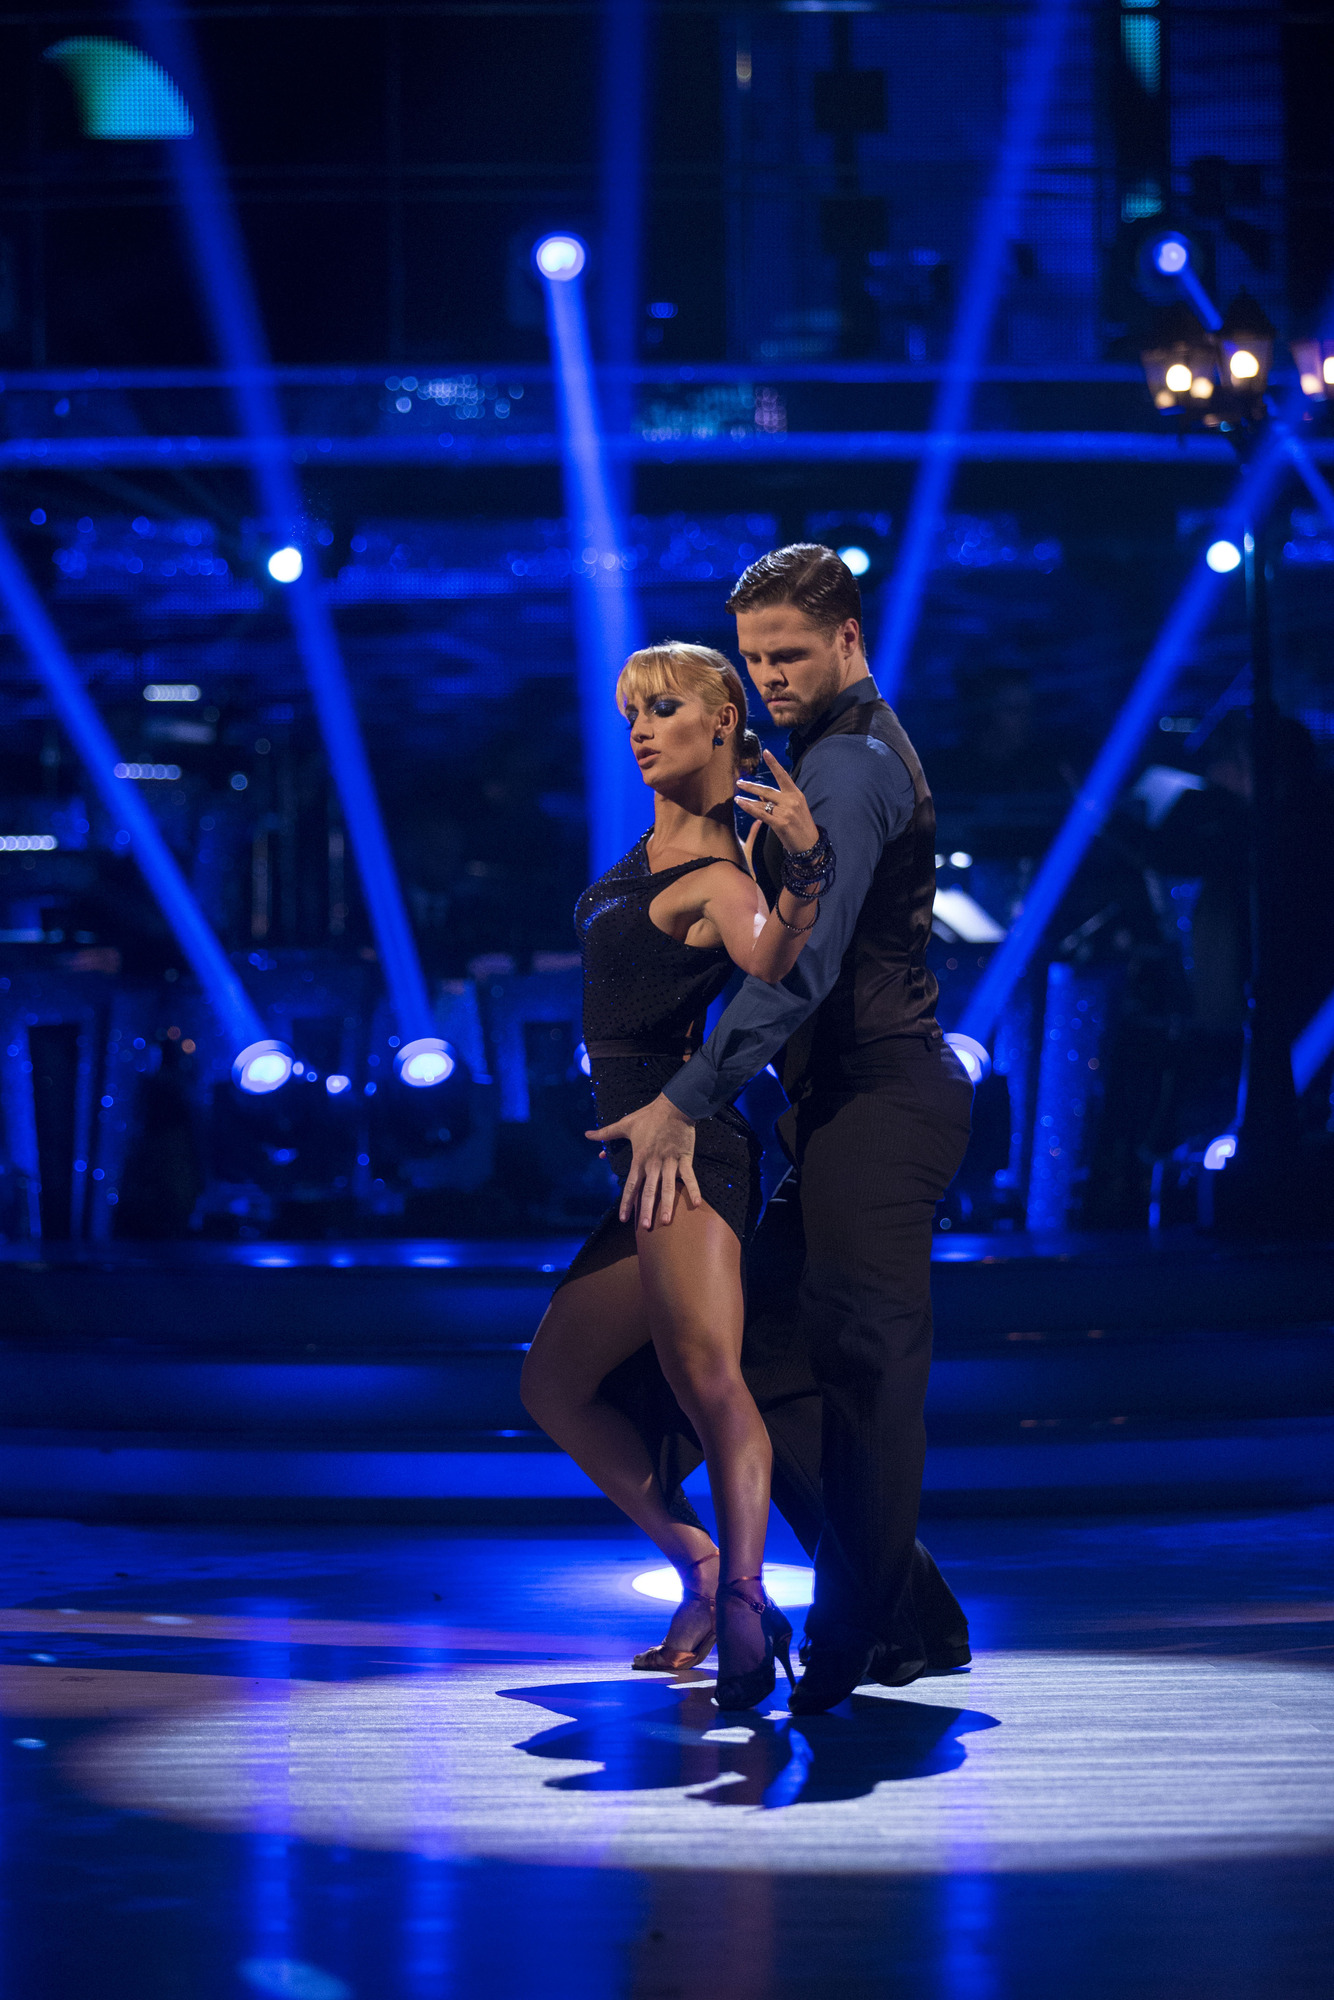 Strictly Come Dancing | Week | Ballet News | Straight from the stage - bringing you ballet insights